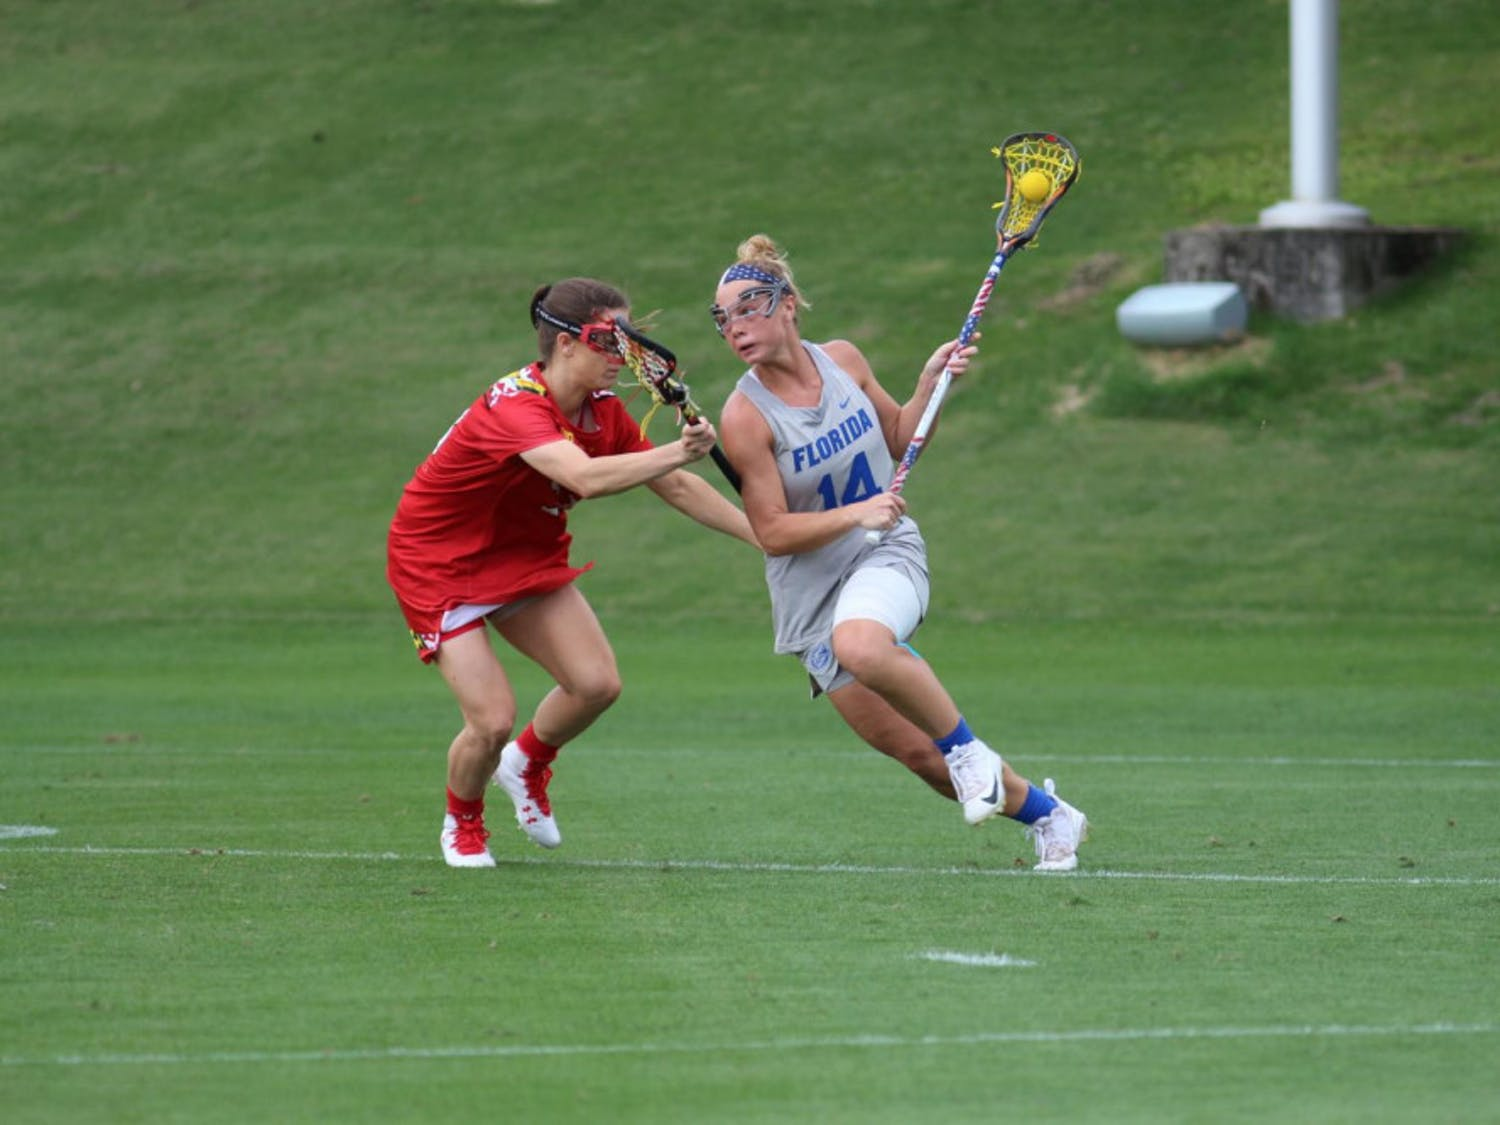 Senior attacker Lindsey Ronbeck recorded three goals, one assist and six draw controls in Florida's 16-9 victory over the Johns Hopkins Blue Jays on Friday.